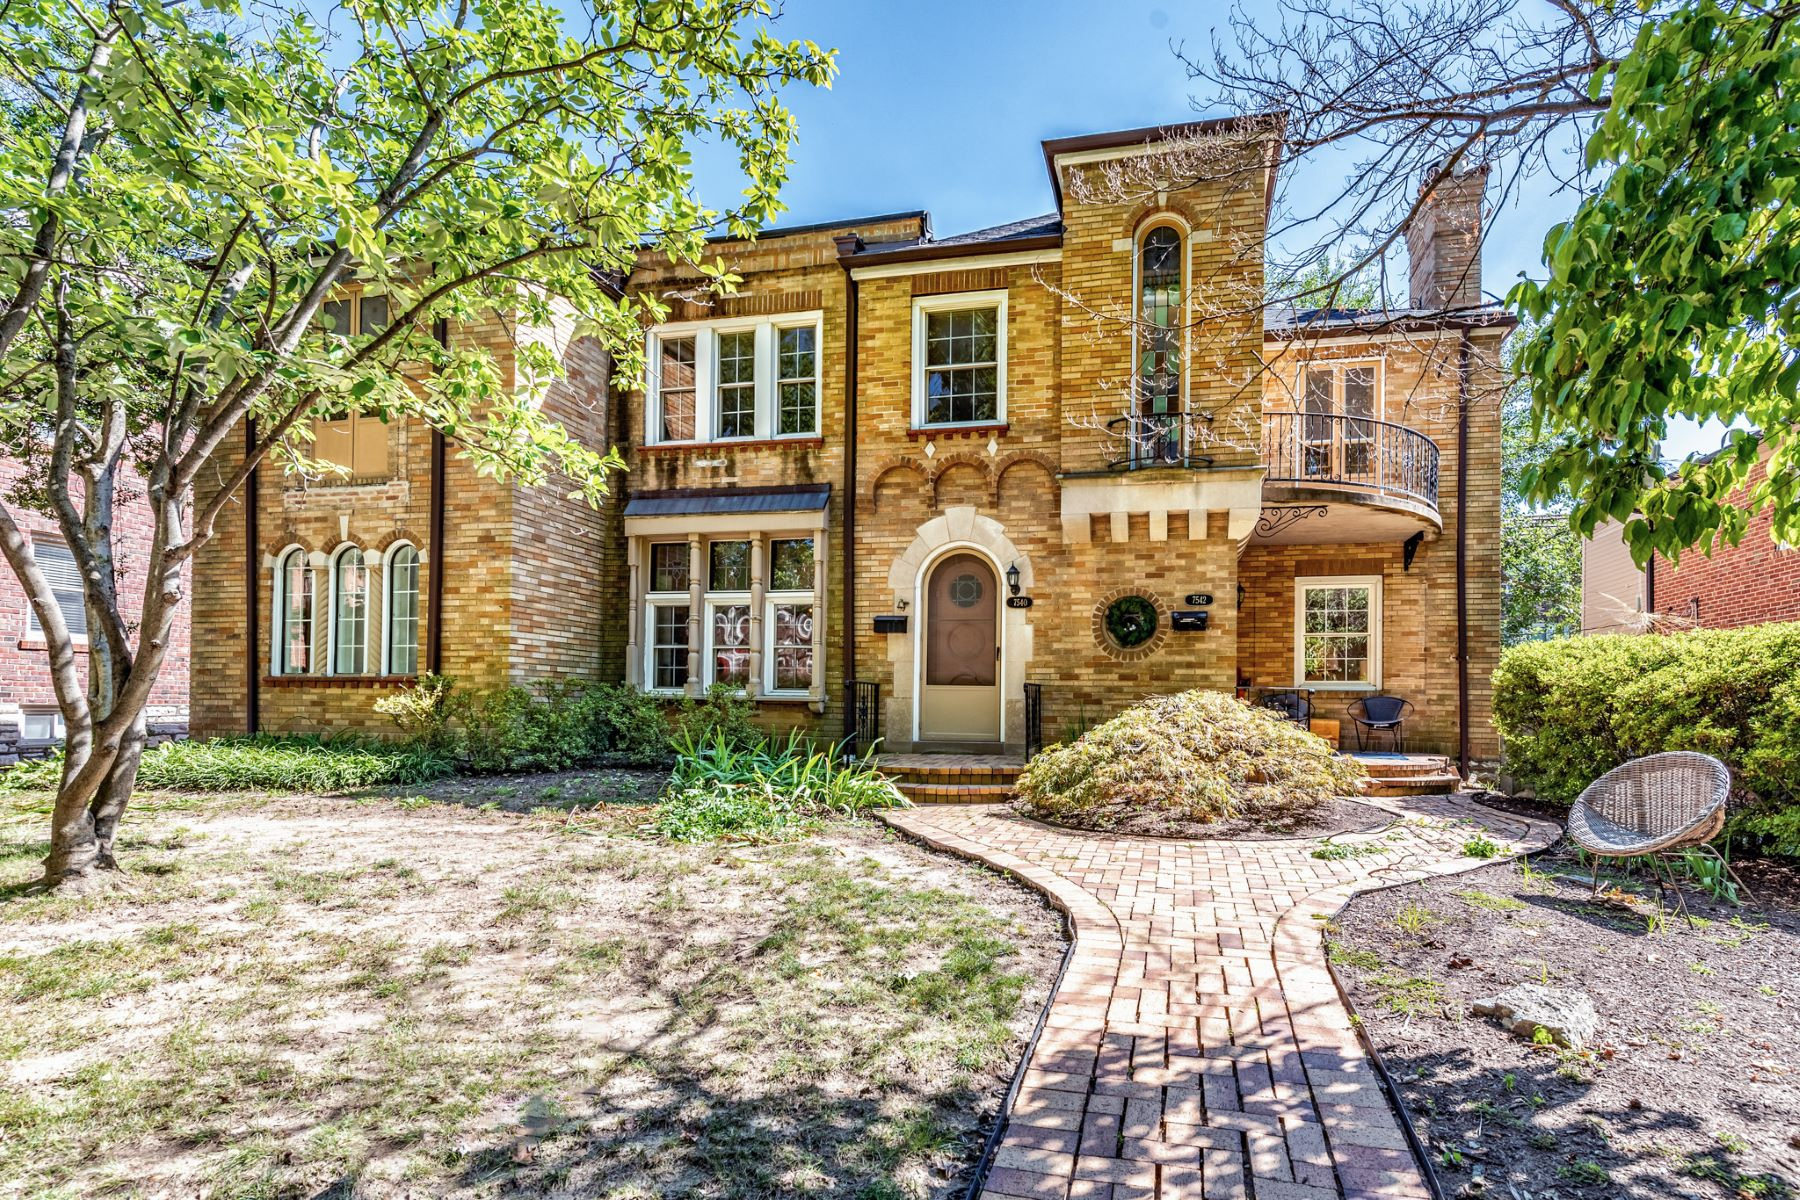 Duplex Homes for Sale at Wonderful Duplex in the Heart of the Moorlands 7540 Wellington Way Clayton, Missouri 63105 United States